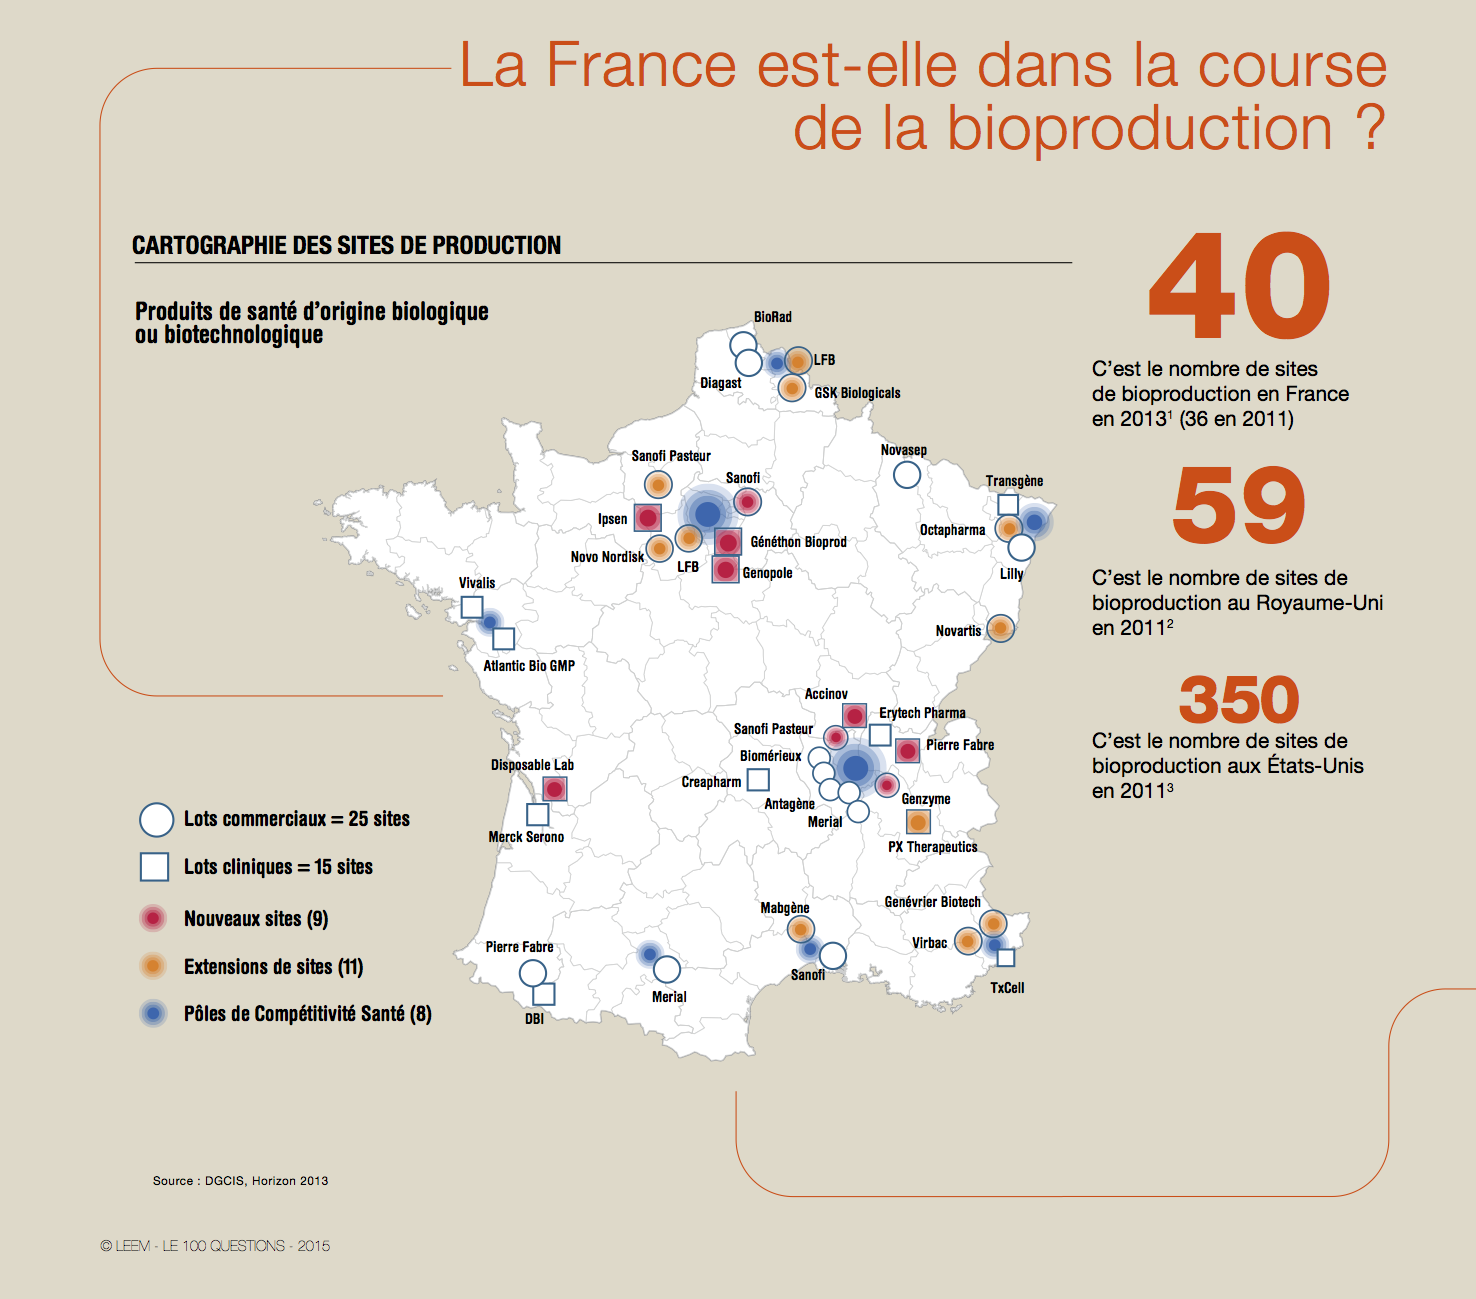 13_Bioproduction _ La France est-elle dans la course de la bioproduction _